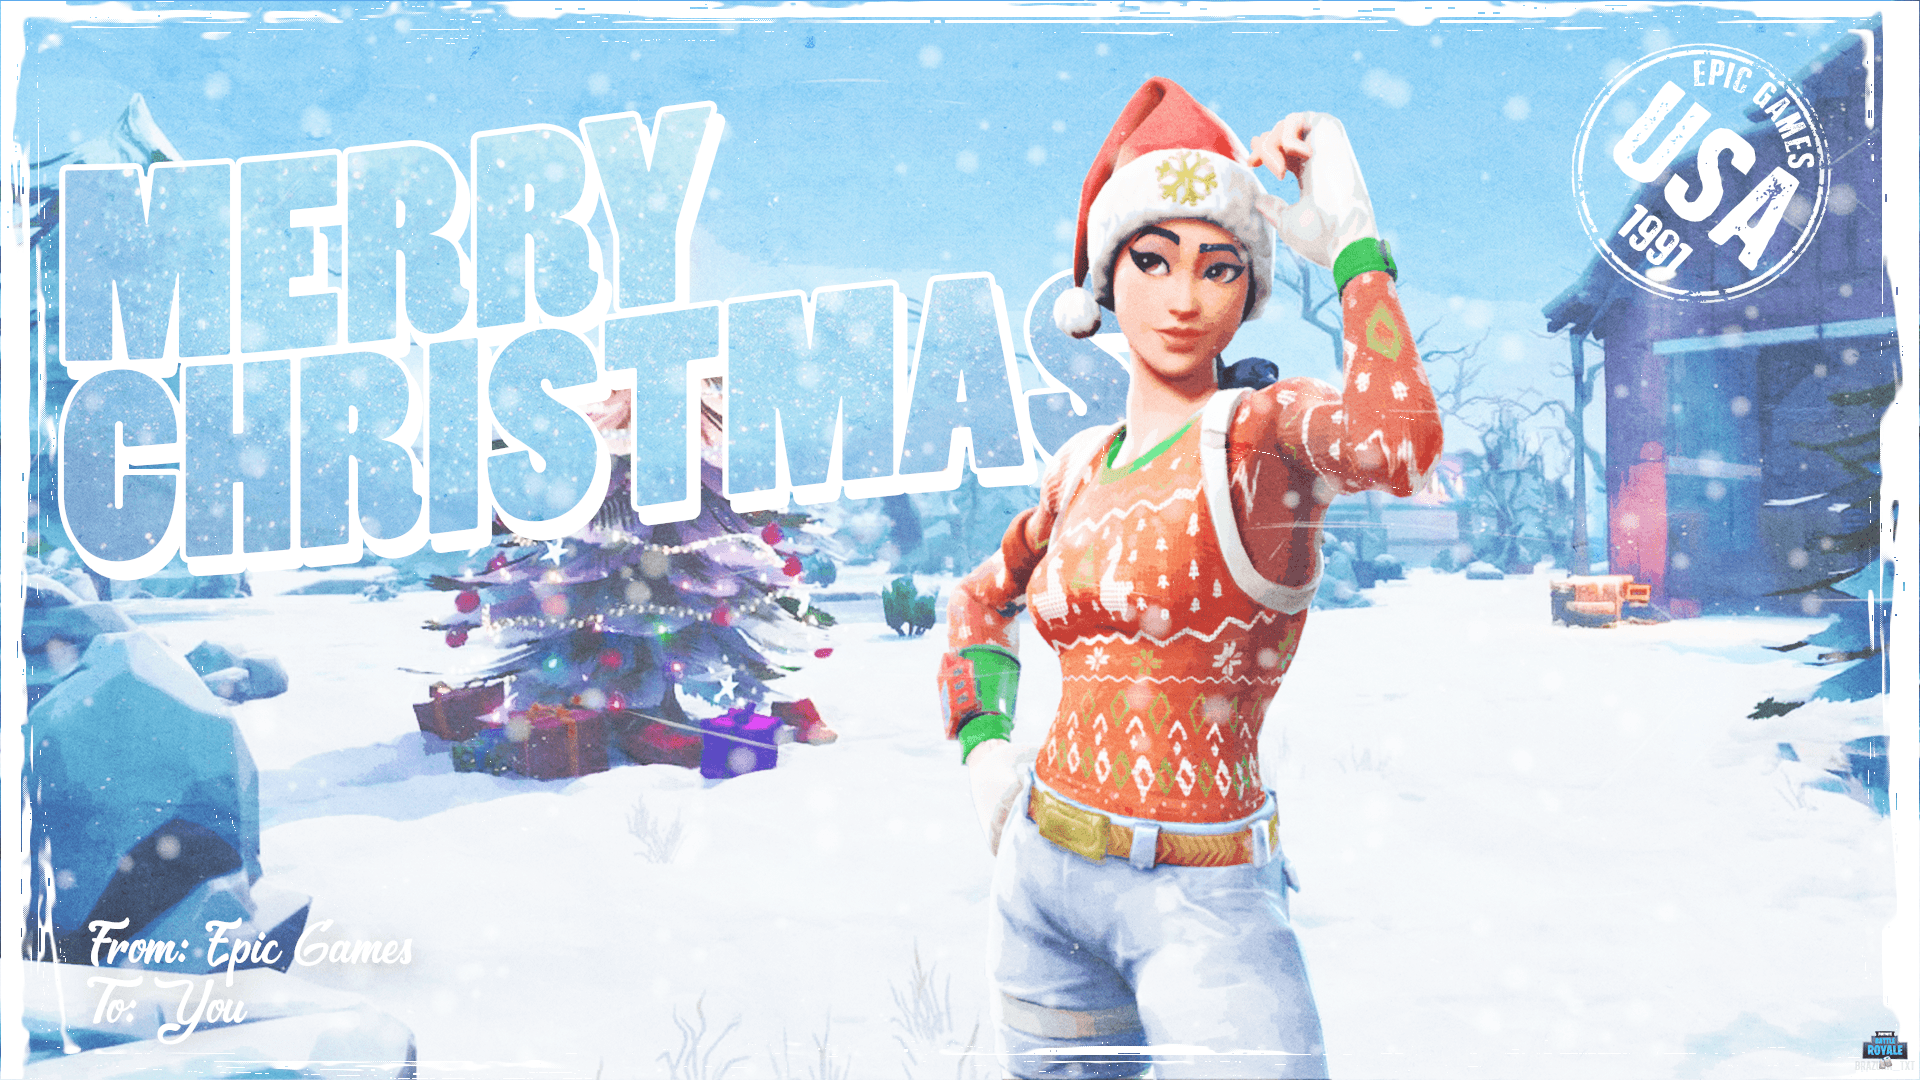 Christmas Skins.Fortnite Christmas Skins Wallpapers Top Free Fortnite